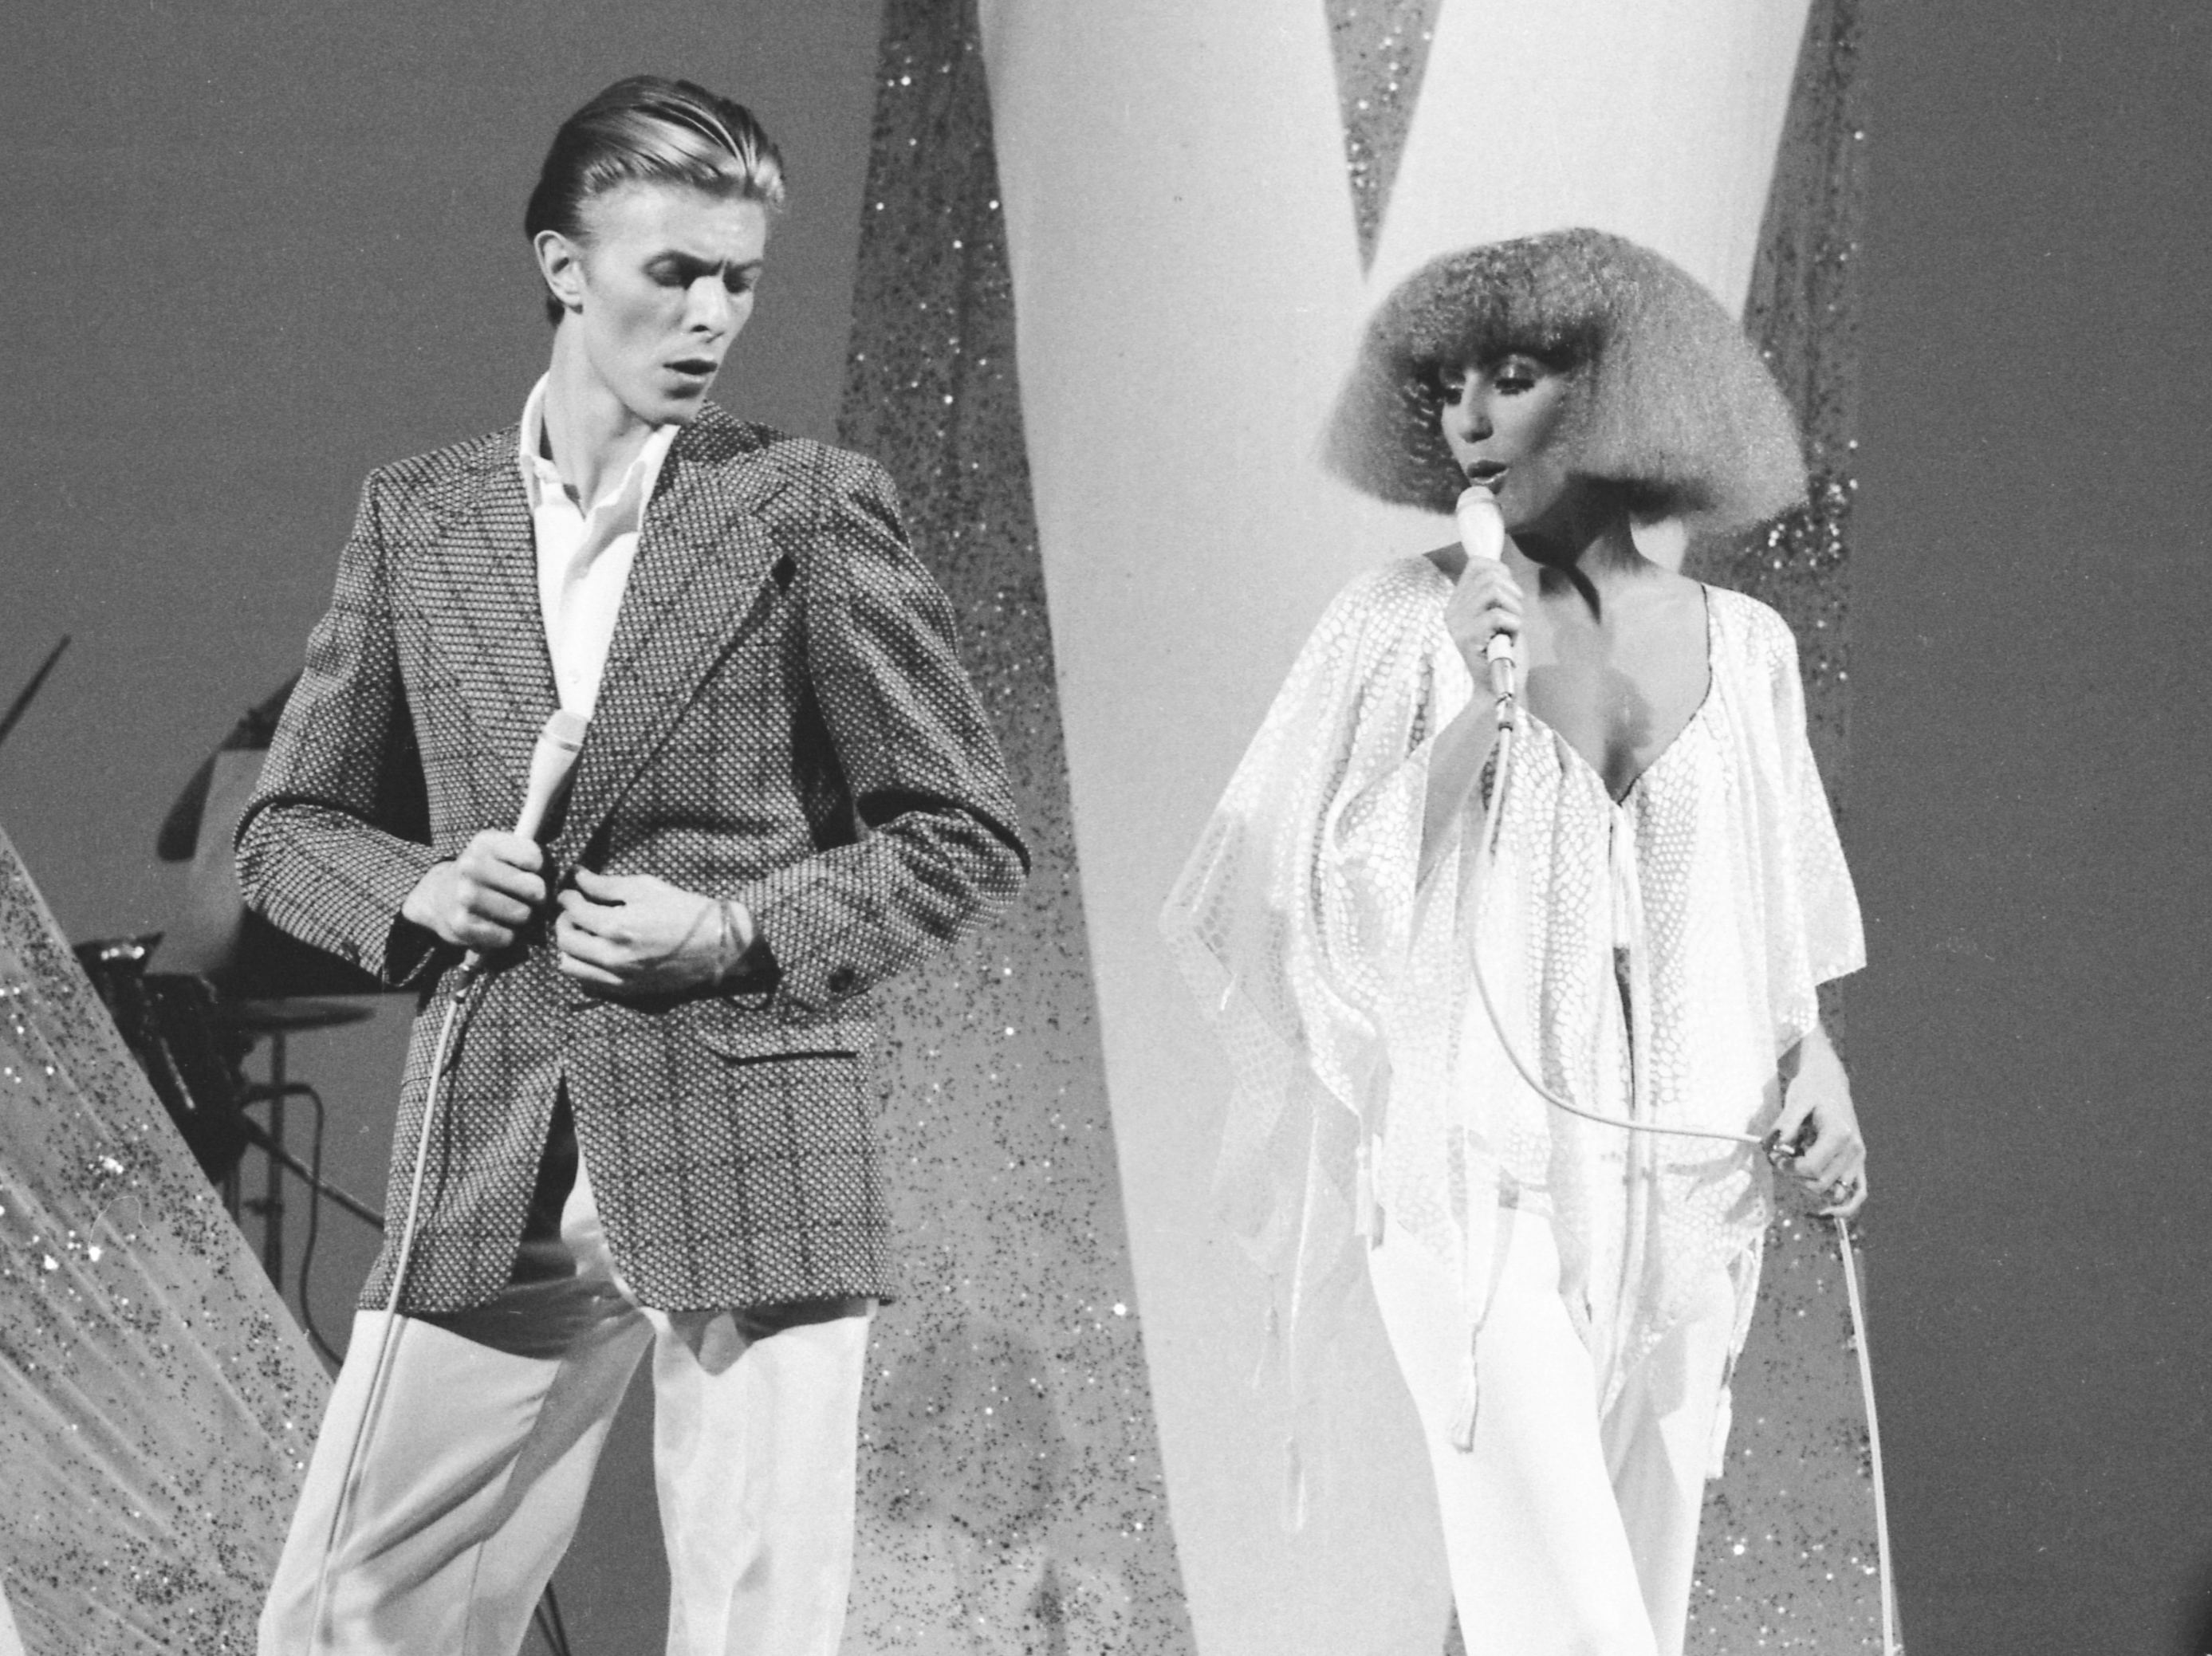 David Bowie and Cher perform on the variety television show Cher on Sept. 18, 1975 in Los Angeles.